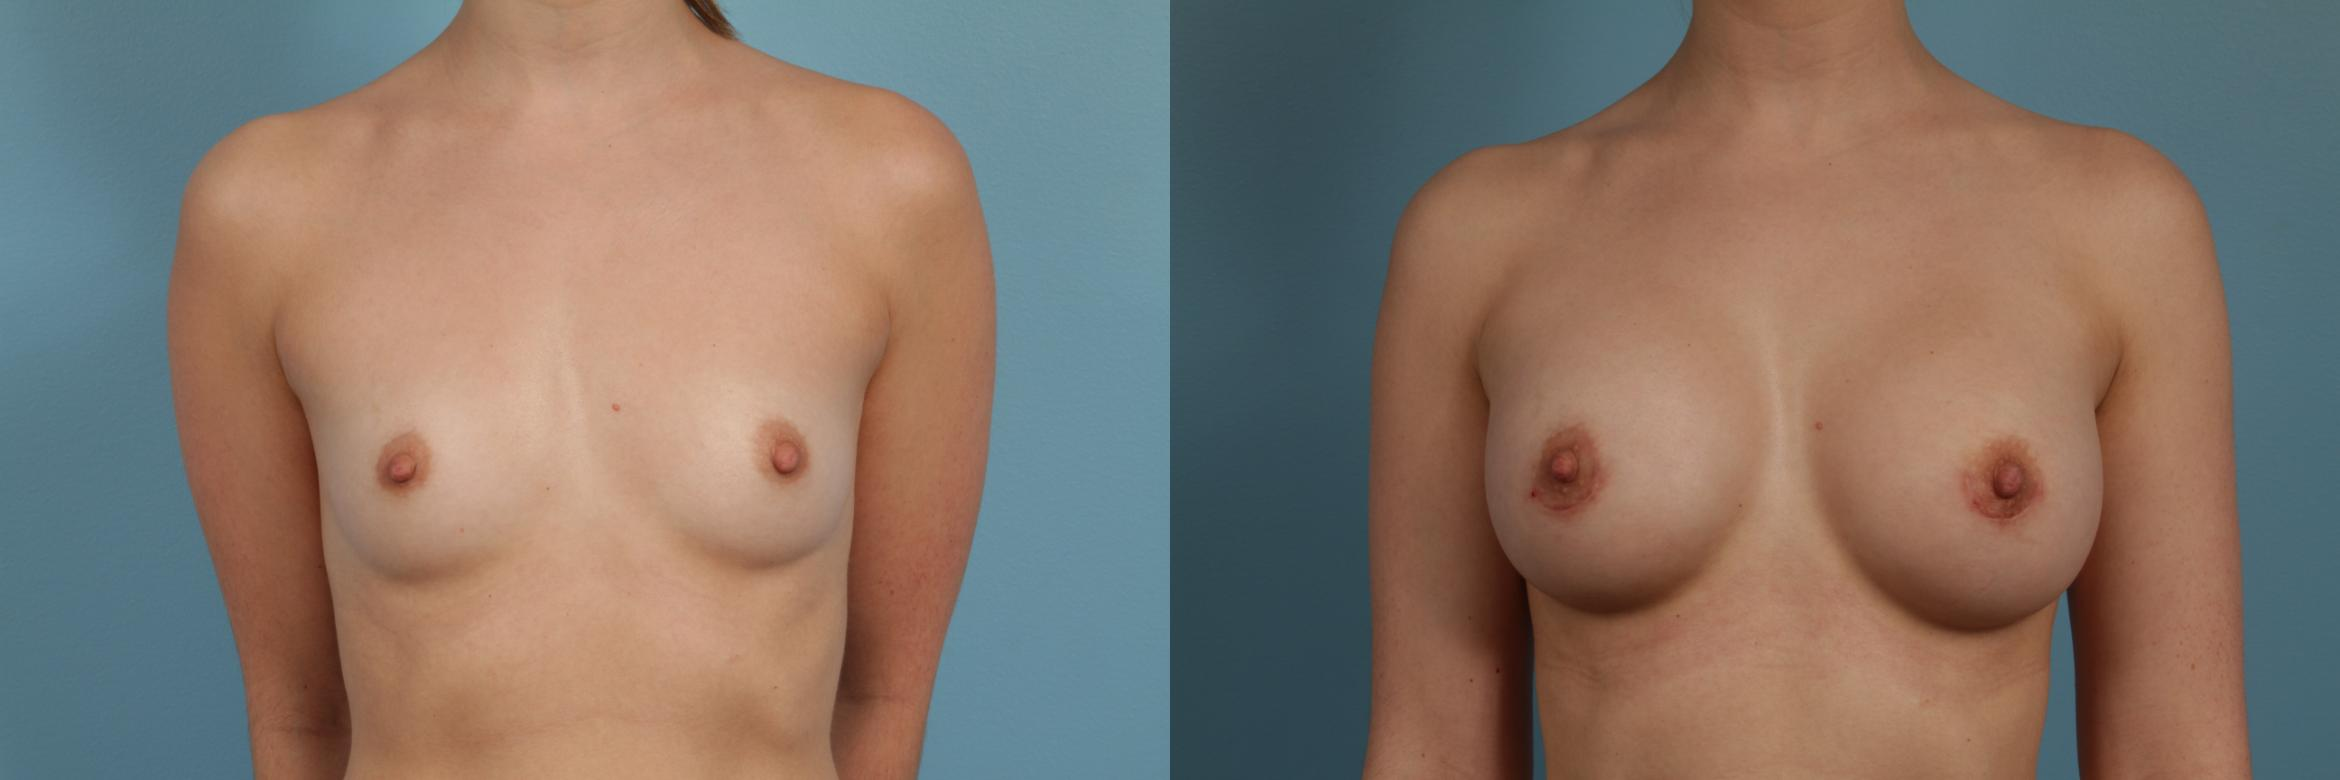 Breast Augmentation Case 273 Before & After View #1 | Chicago, IL | TLKM Plastic Surgery